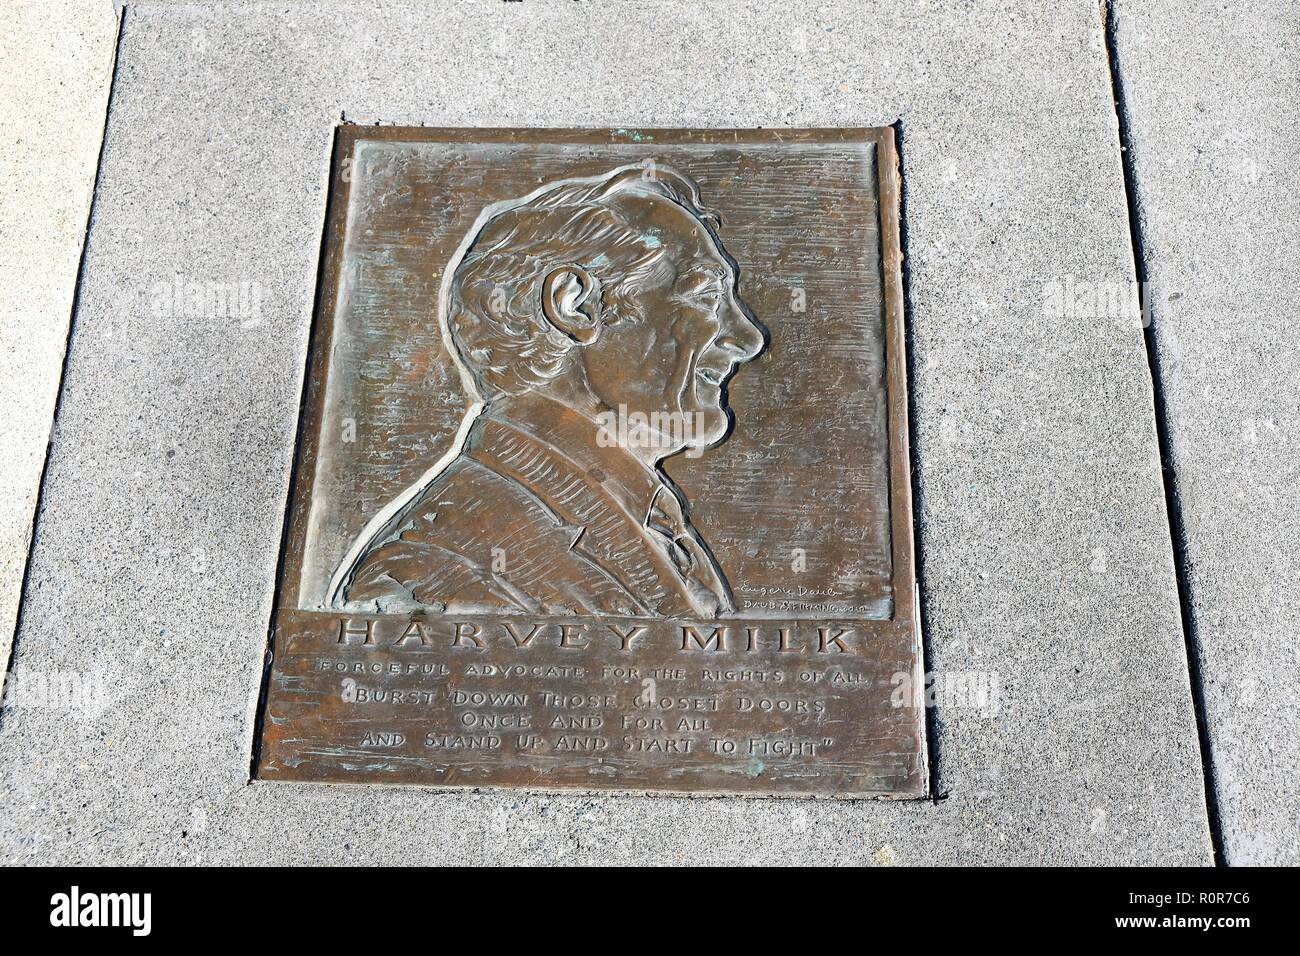 Plaque for Harvey Milk, human rights advocate, on the Castro Street sidewalk outside his campaign headquarters and camera shop; The Castro District. - Stock Image